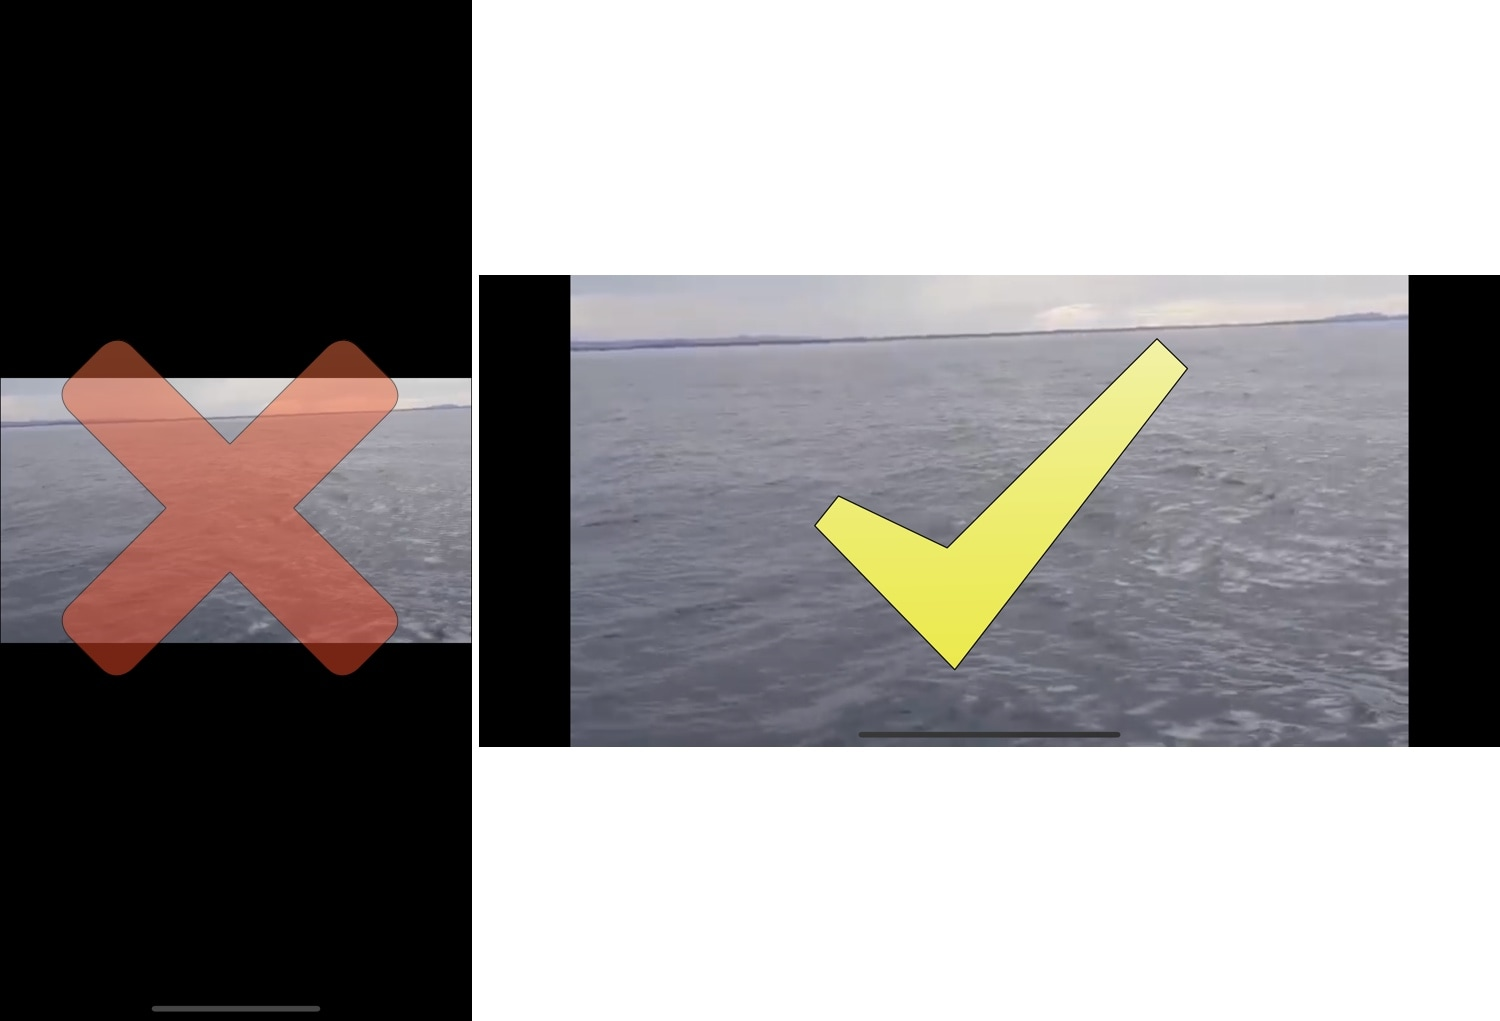 Video Direction Control lets rotation lock users enjoy videos in landscape orientation without fuss